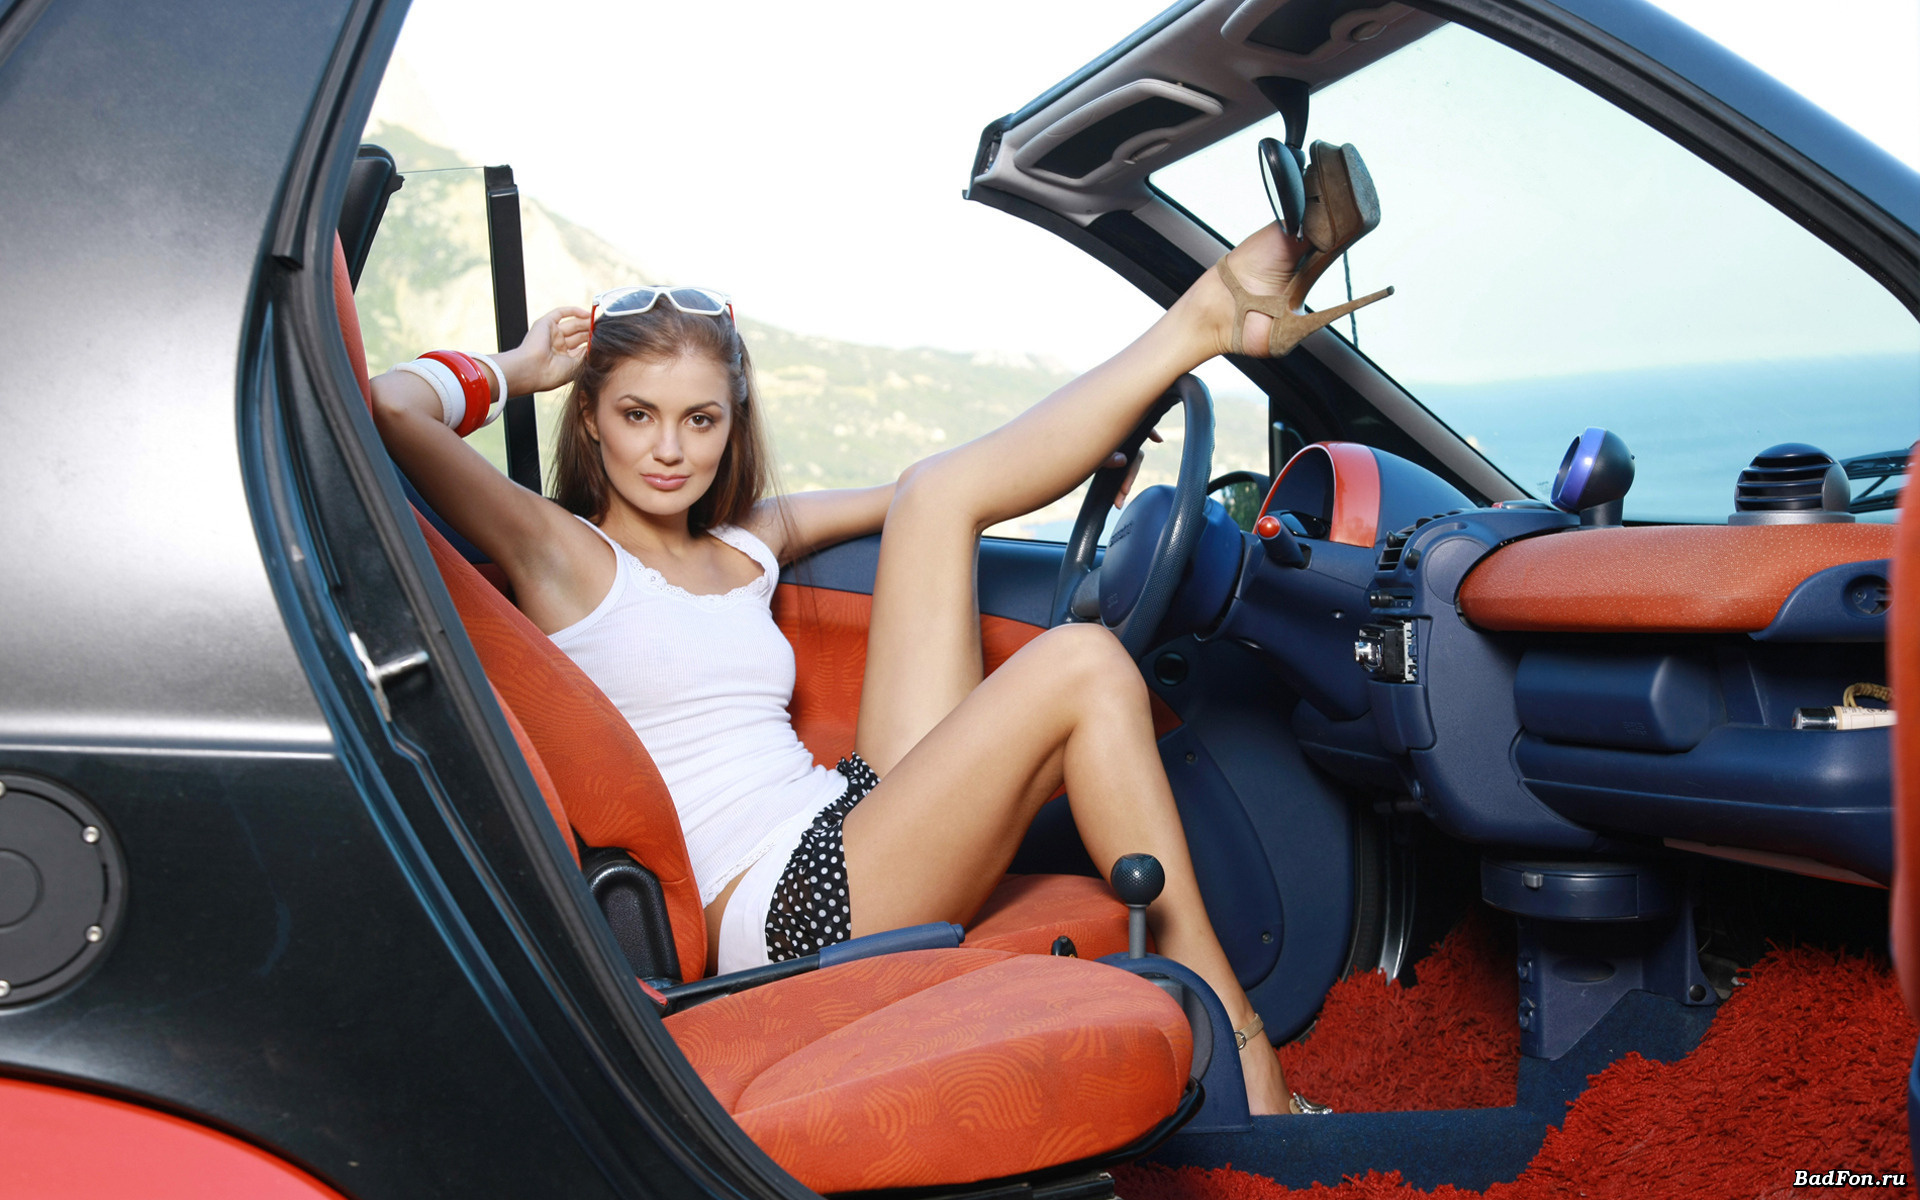 Sexy girl in her Smart roadster car Cars and girls Pinterest 1920x1200